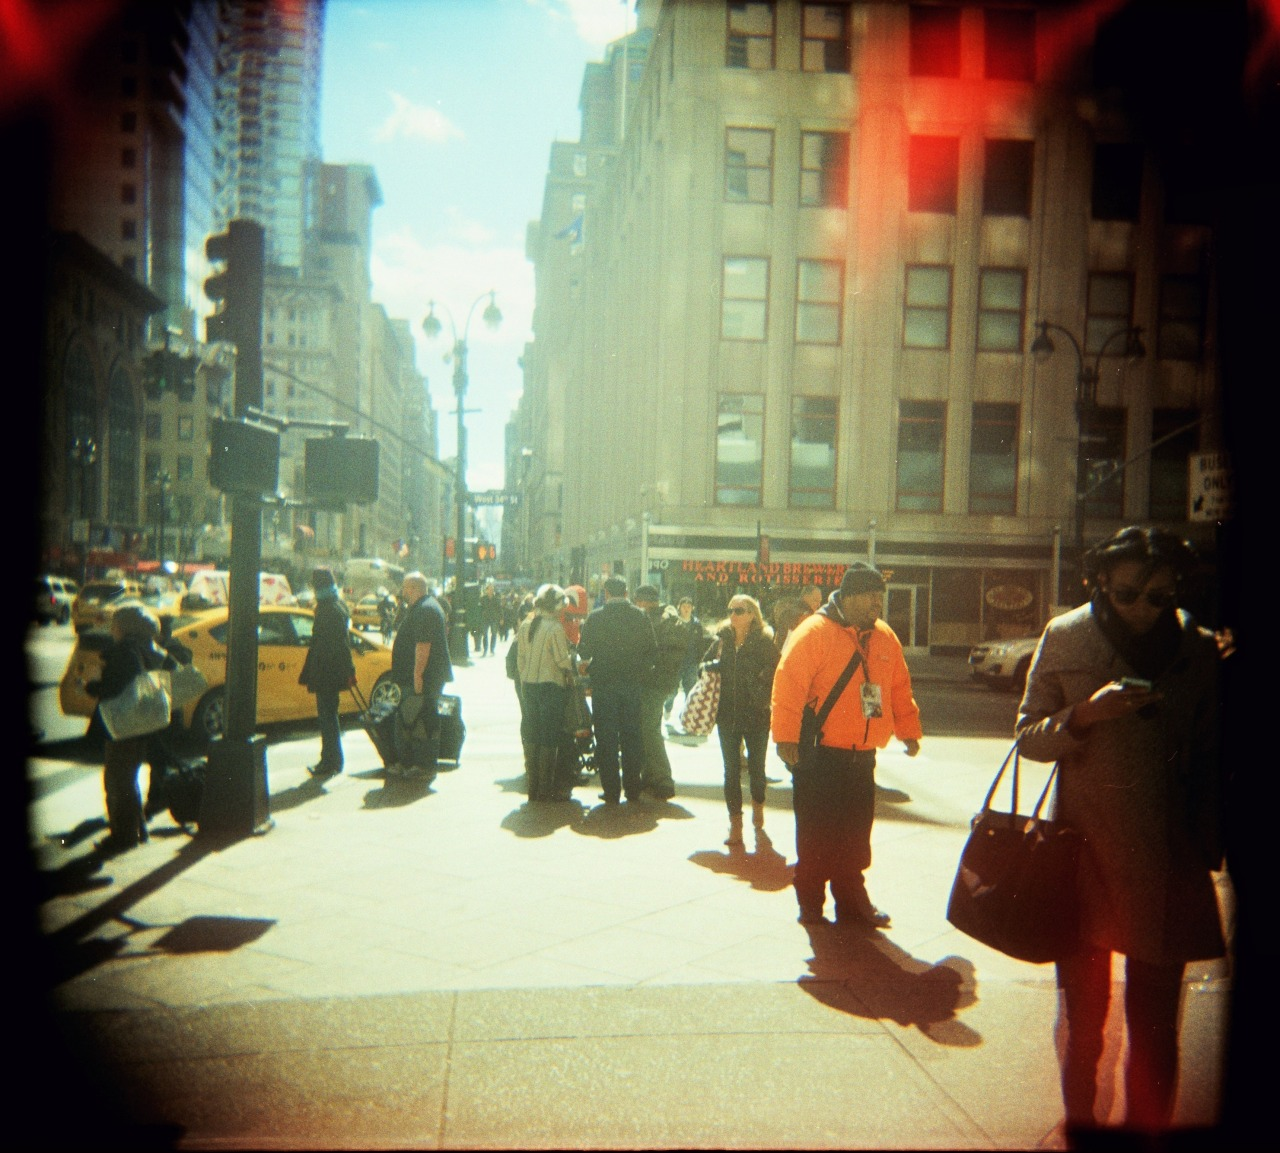 Busted out the Holga again! But this time, in color. I was fully expecting this roll not to come out, but lo and behold, maagic. I've gotten in the habit of only really taking any pictures while at home, but I'm warming up to Chicago, so I'll try to be better about that. (Also, look out for Hong Kong this summer!)